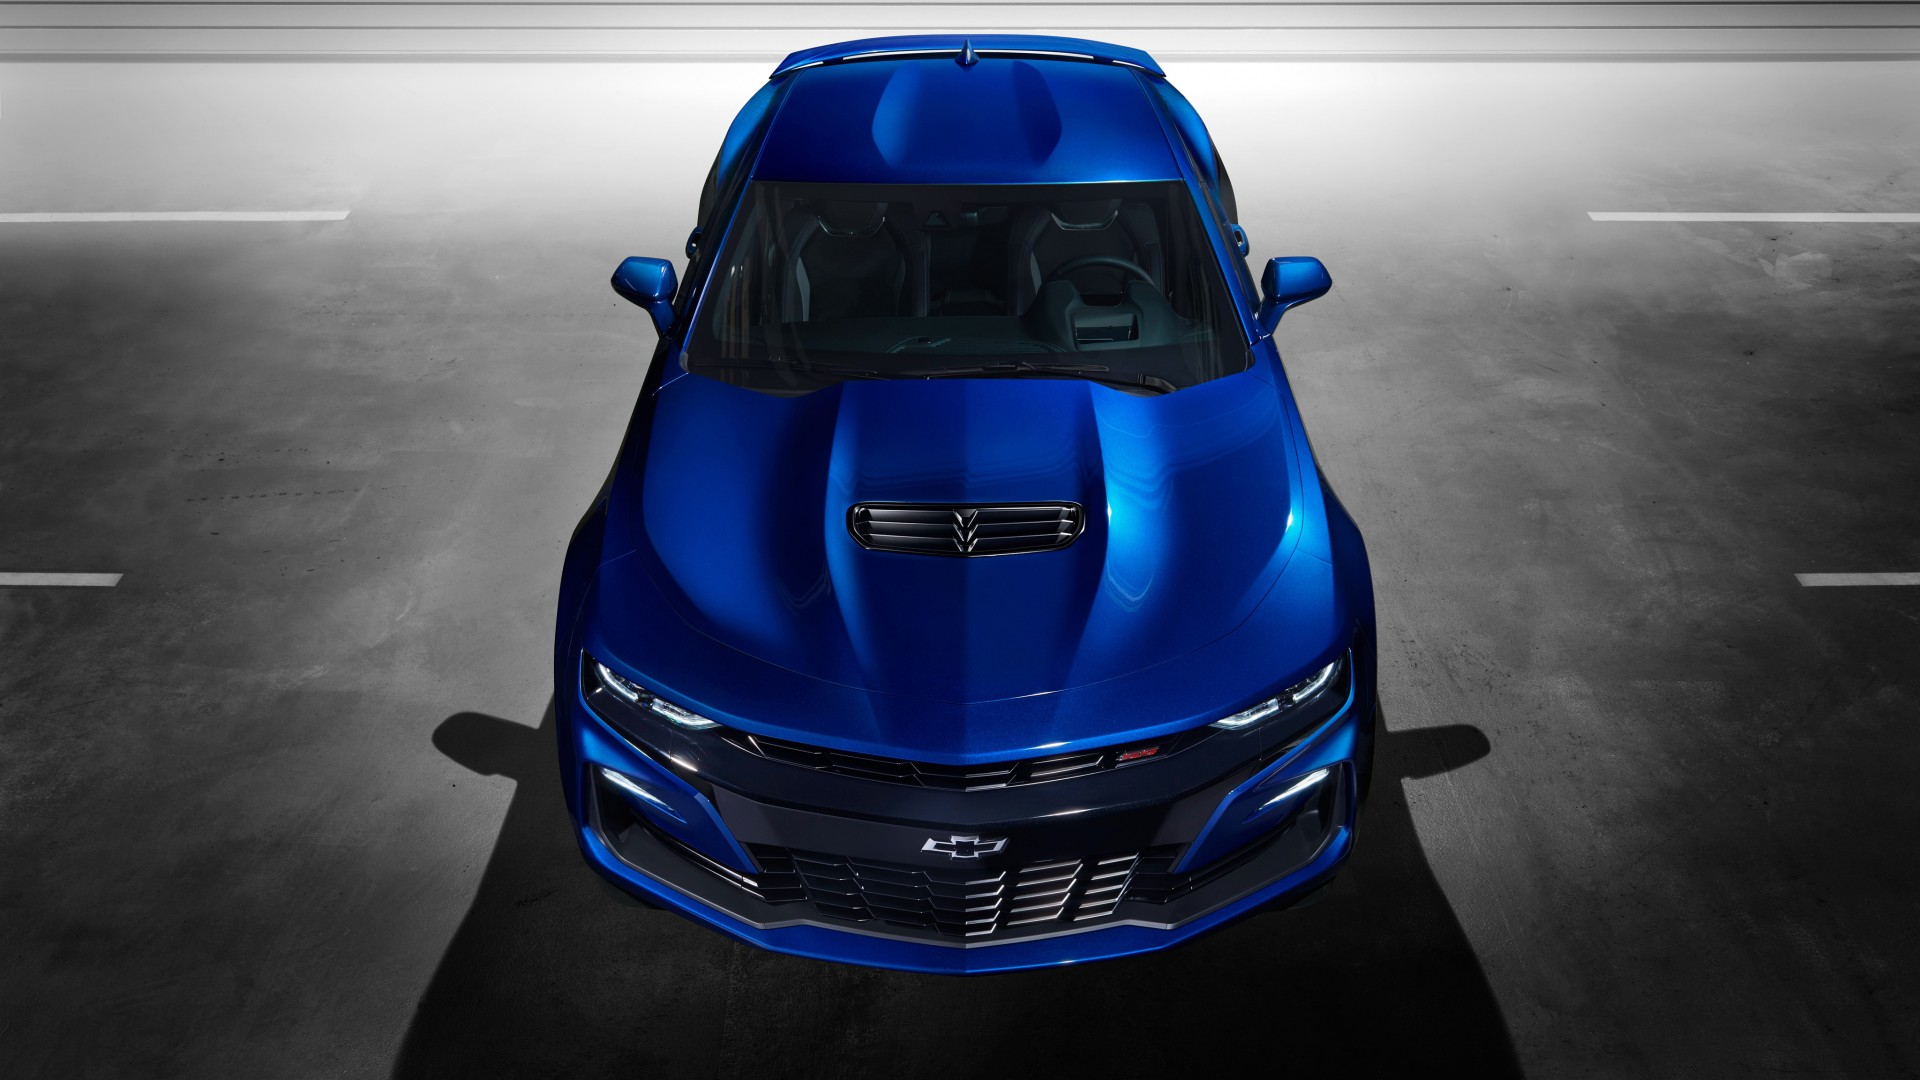 2019 Chevrolet Camaro SS 4K Car Wallpaper   IPhone 7 Plus / IPhone 8 Plus